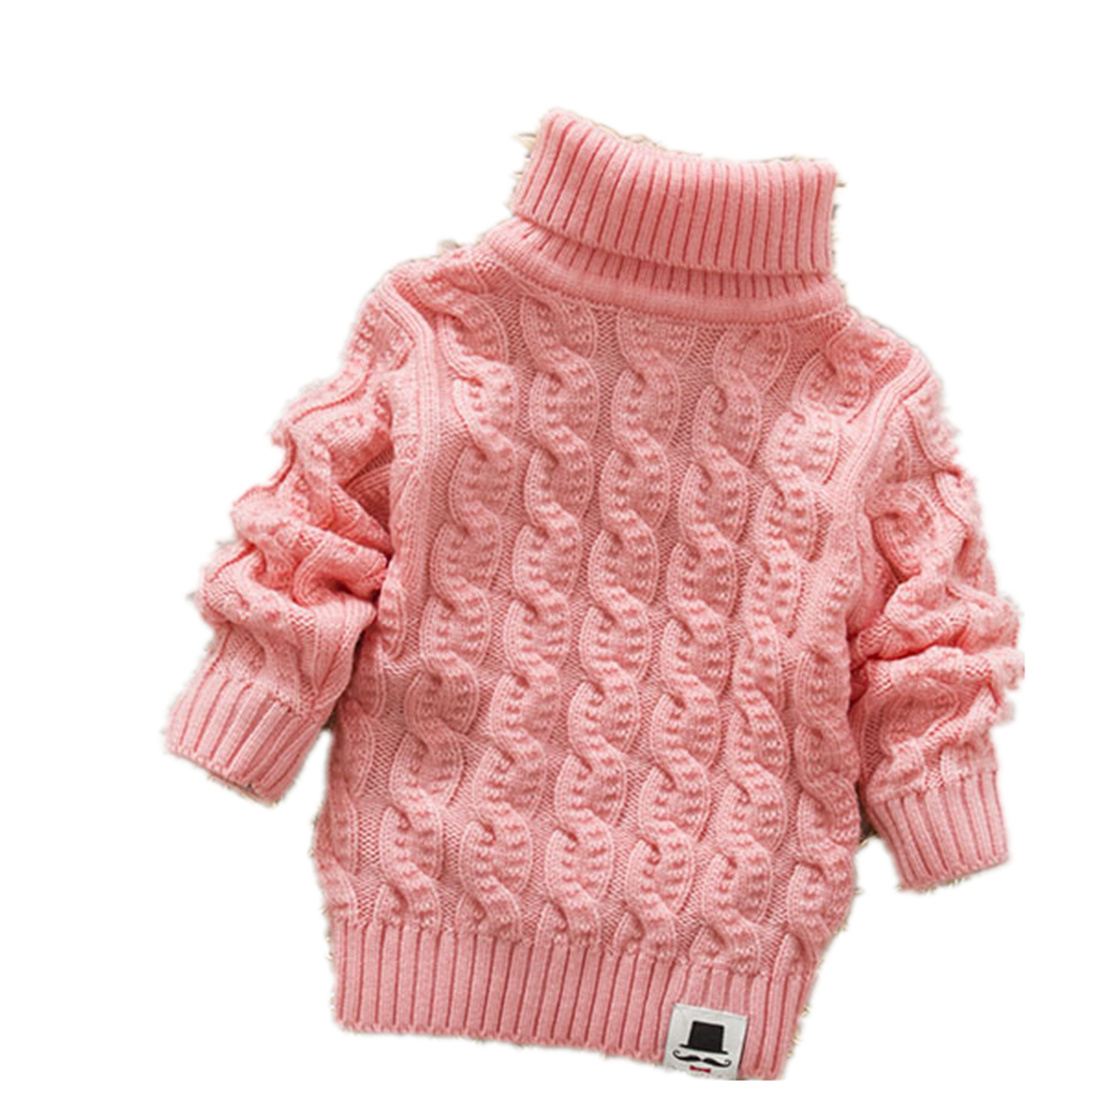 Boys Girls Turtleneck with Beard Label Solid Baby Kids Sweaters Soft Warm Sueter Infantil Autumn Winter Children's Sweater Coats 100%merino wool women solid knit turtleneck heaps collar pullovers sueter sweater top tunic jumper 2015 fall winter new